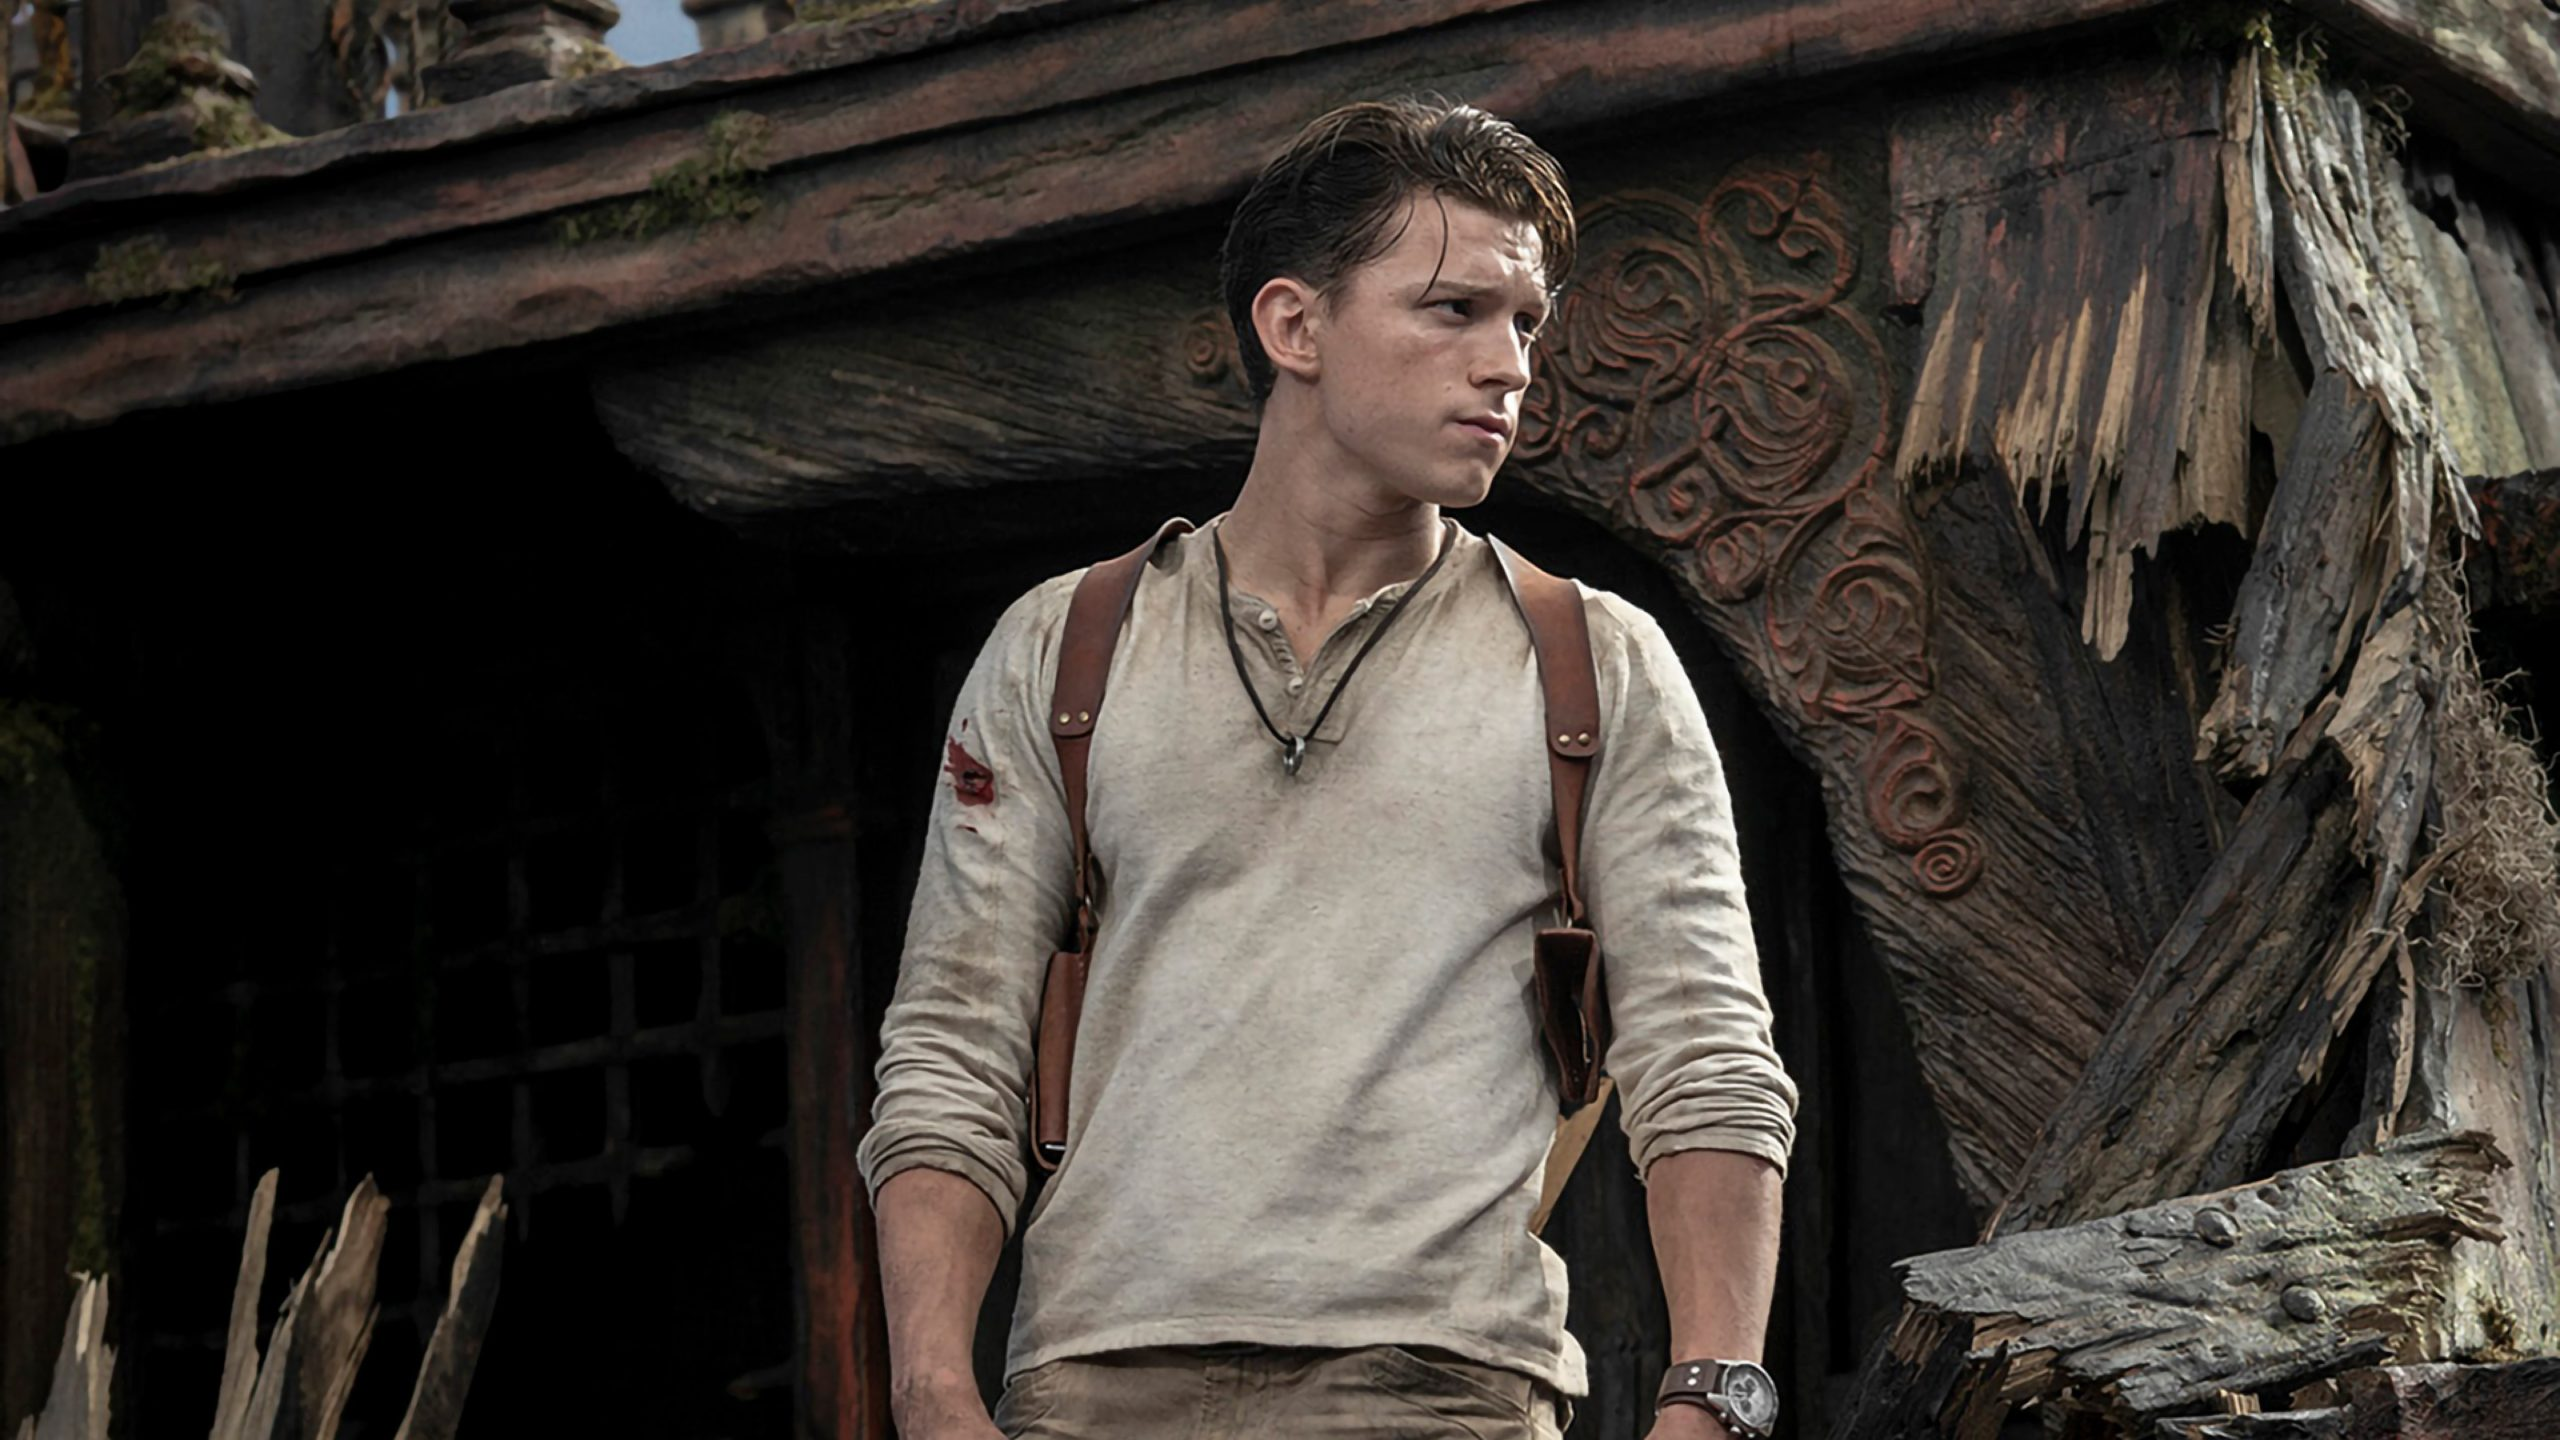 Uncharted film Tom Holland as Nathan Drake